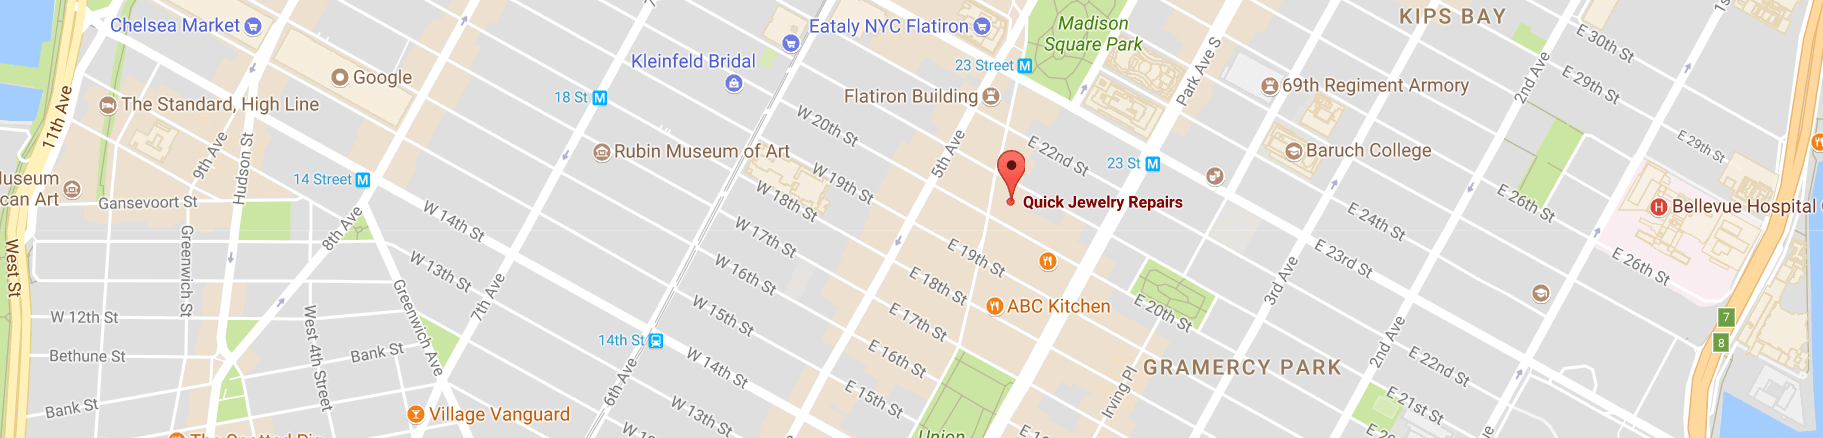 quick jewelry repairs location map